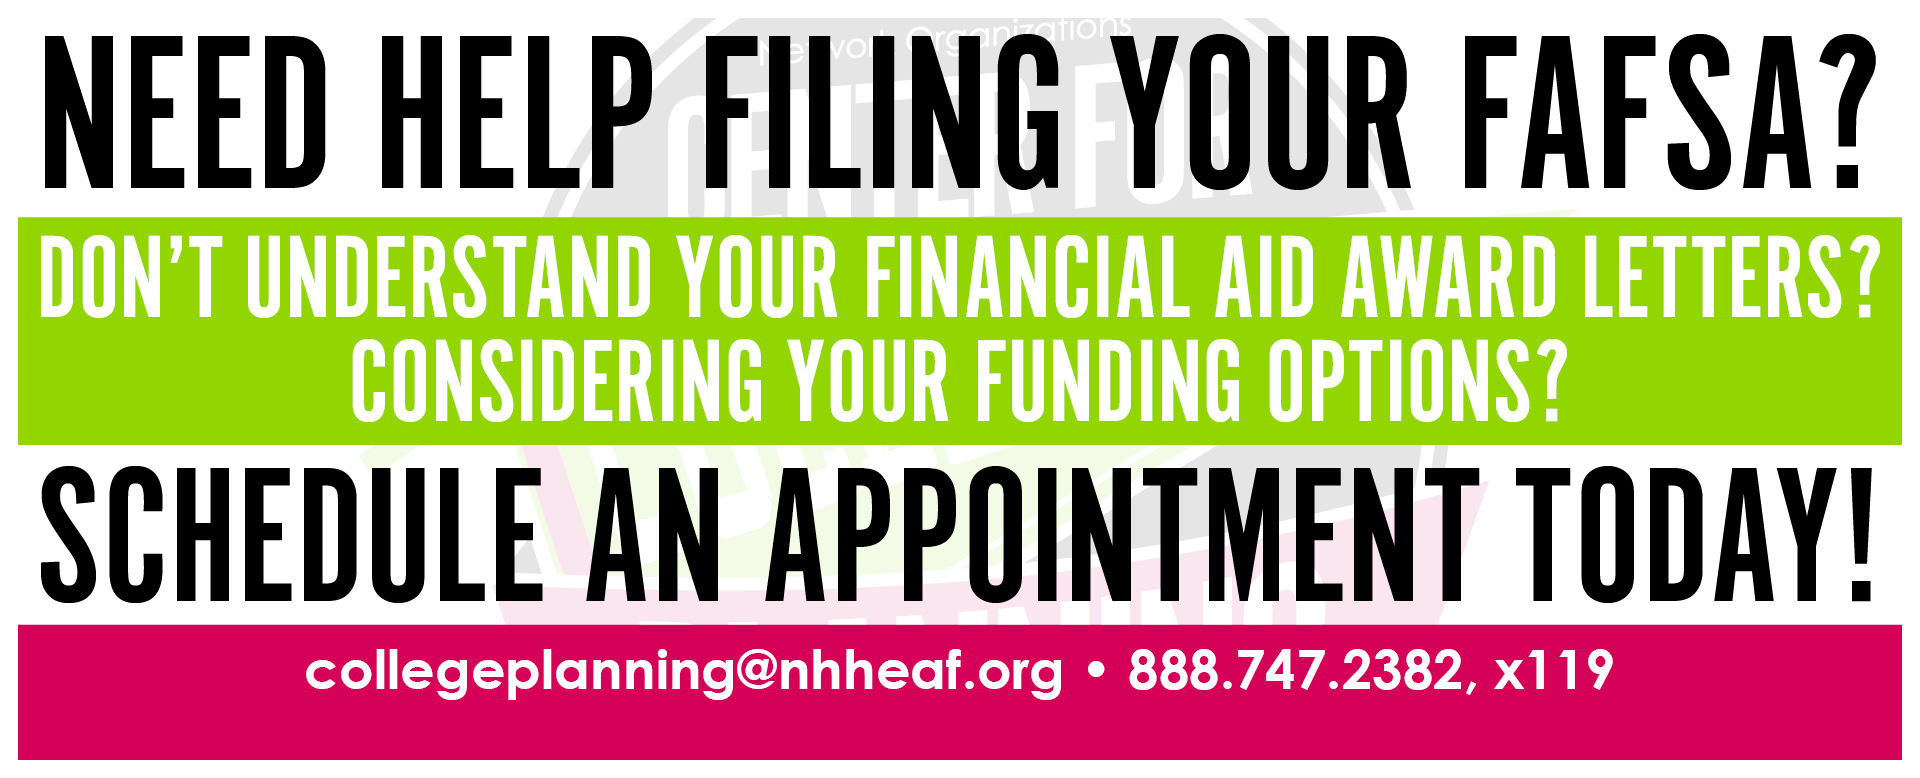 Need help filing your fafsa? Don't understand your financial aid award letters? Considering your funding options? Schedule an appointment today! collegeplanning@nhheaf.org 888.747.2382, x119